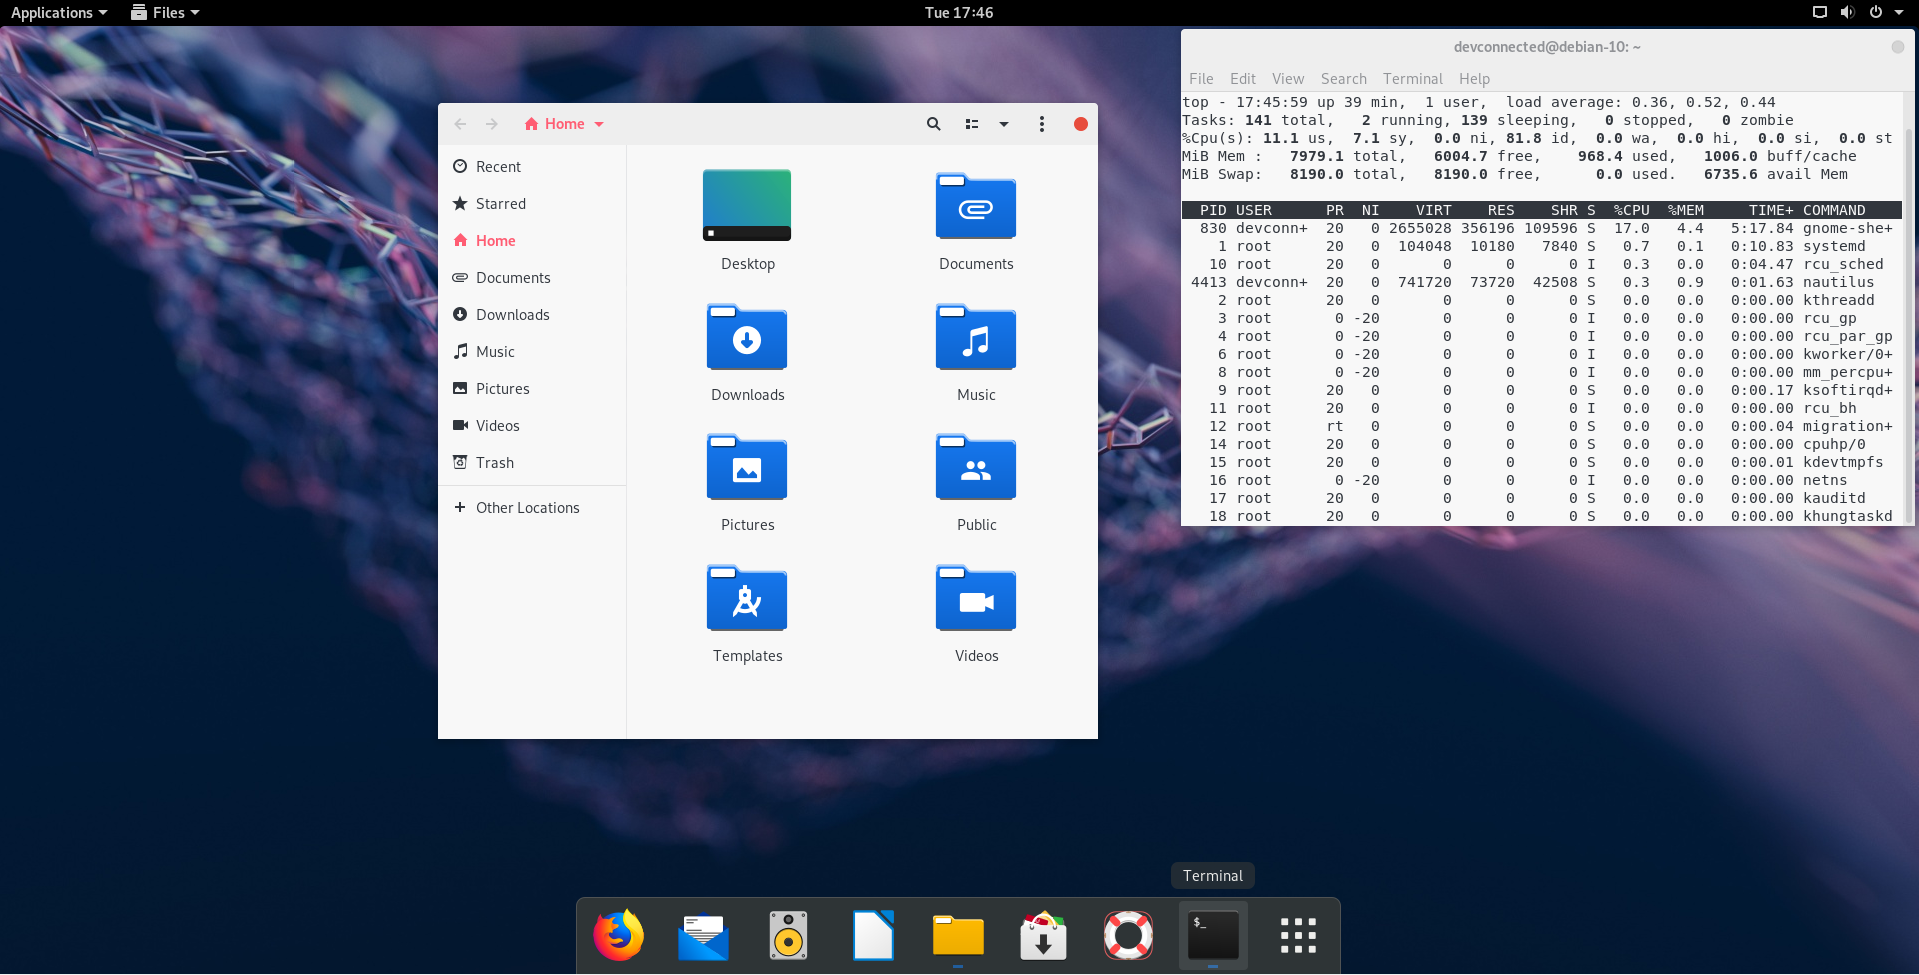 Debian 10 final look with theming